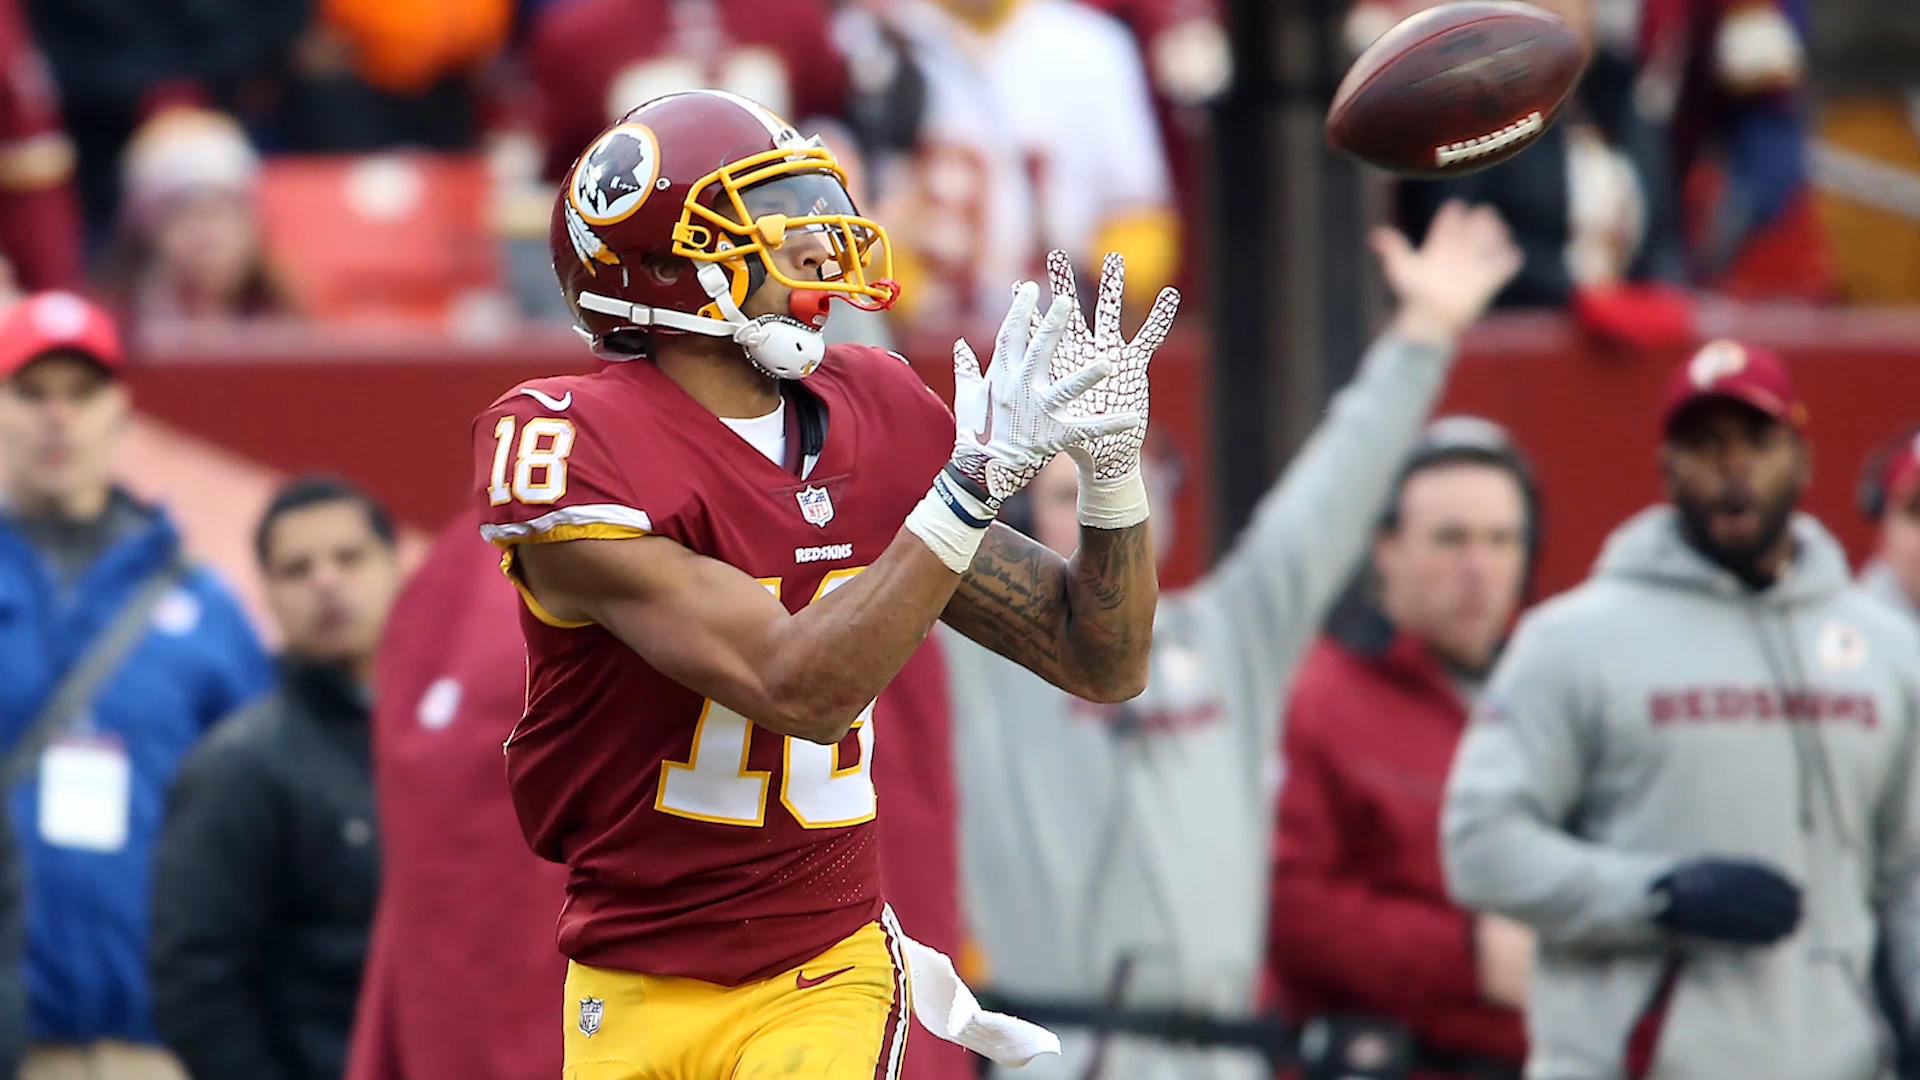 2018 Fantasy Football Draft Prep: No. 3 receivers with starter potential